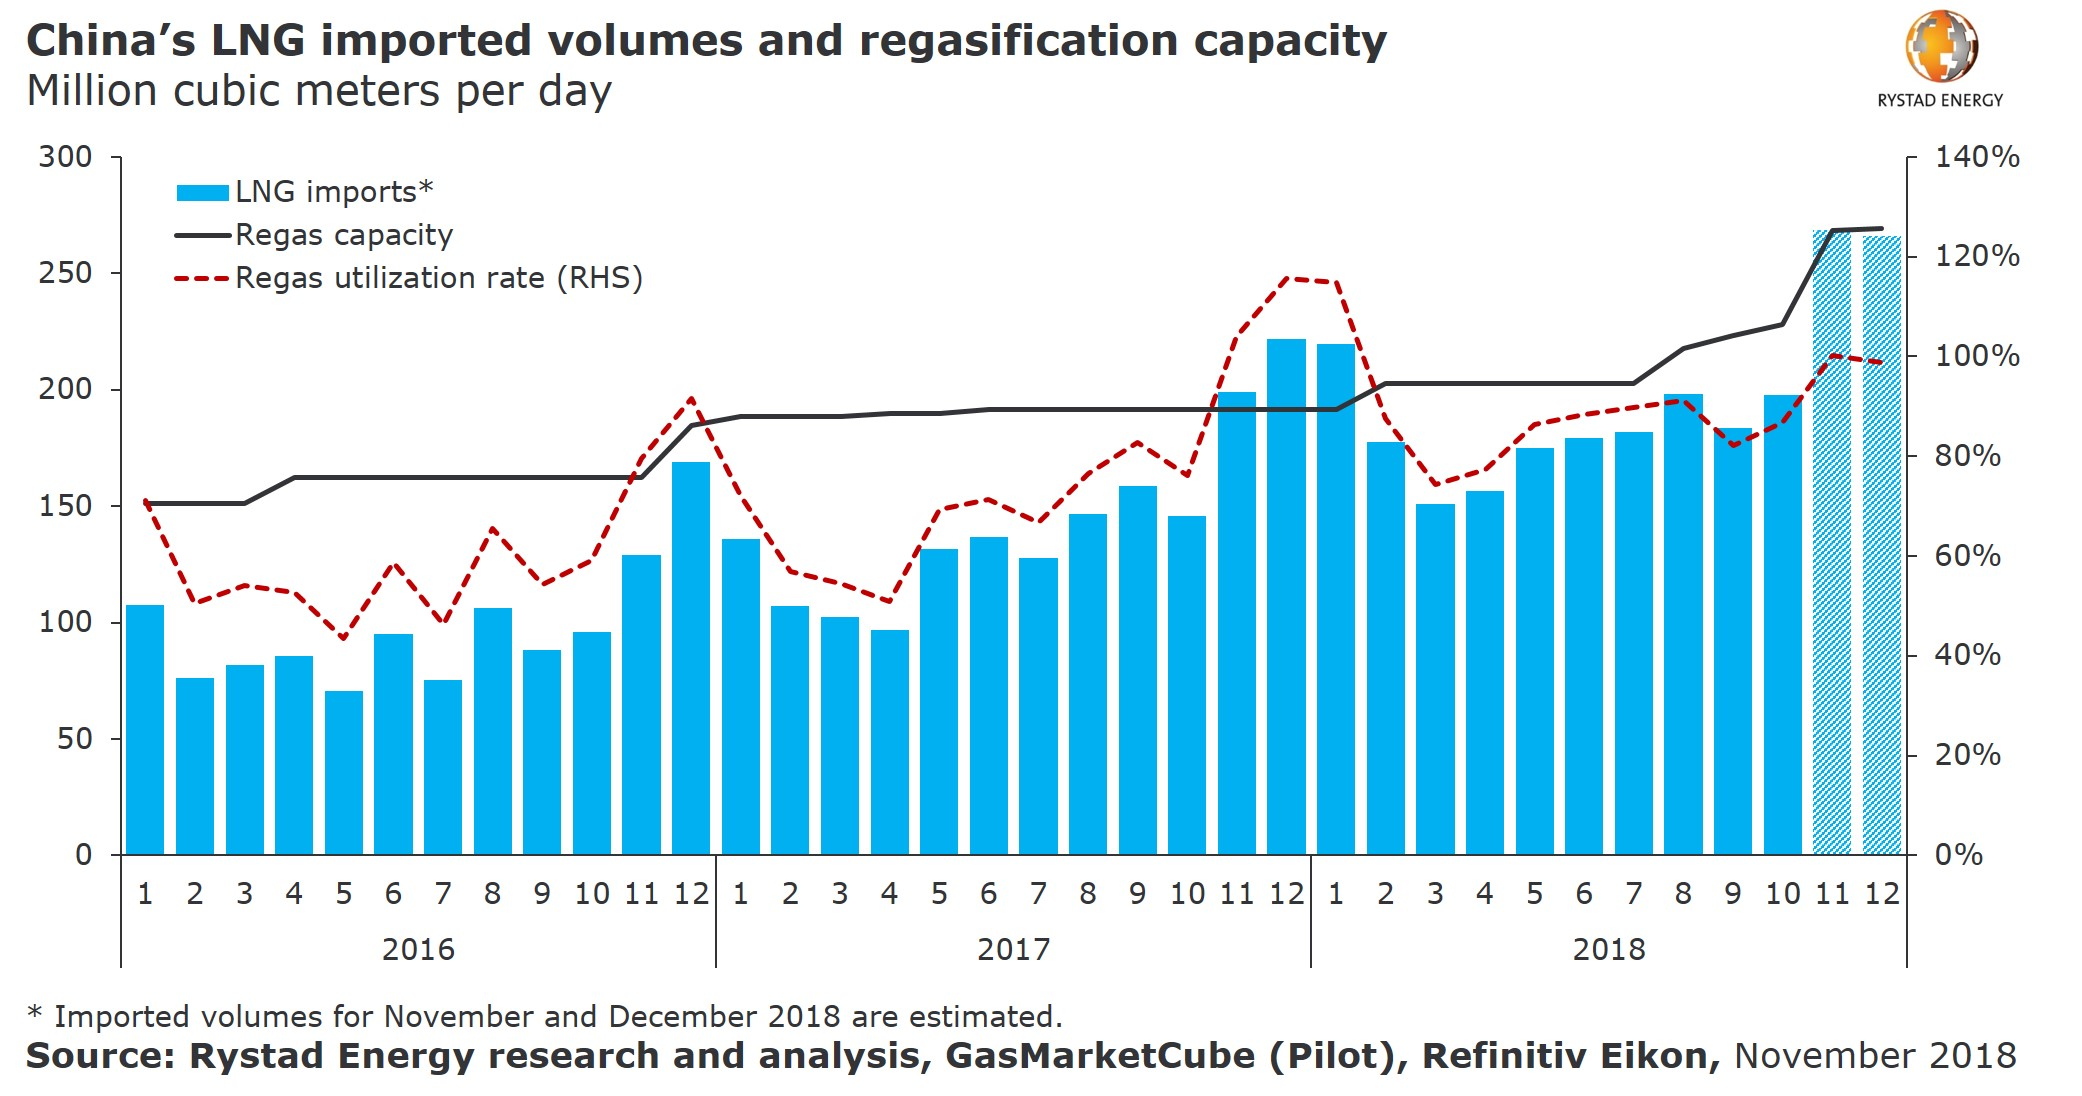 Bar chart showing China`s LNG imported volumes and regasification capacity in Million cubic meters per day from 2016 to 2018, Source: Rystad Energy research and analysis, GasMarketCube